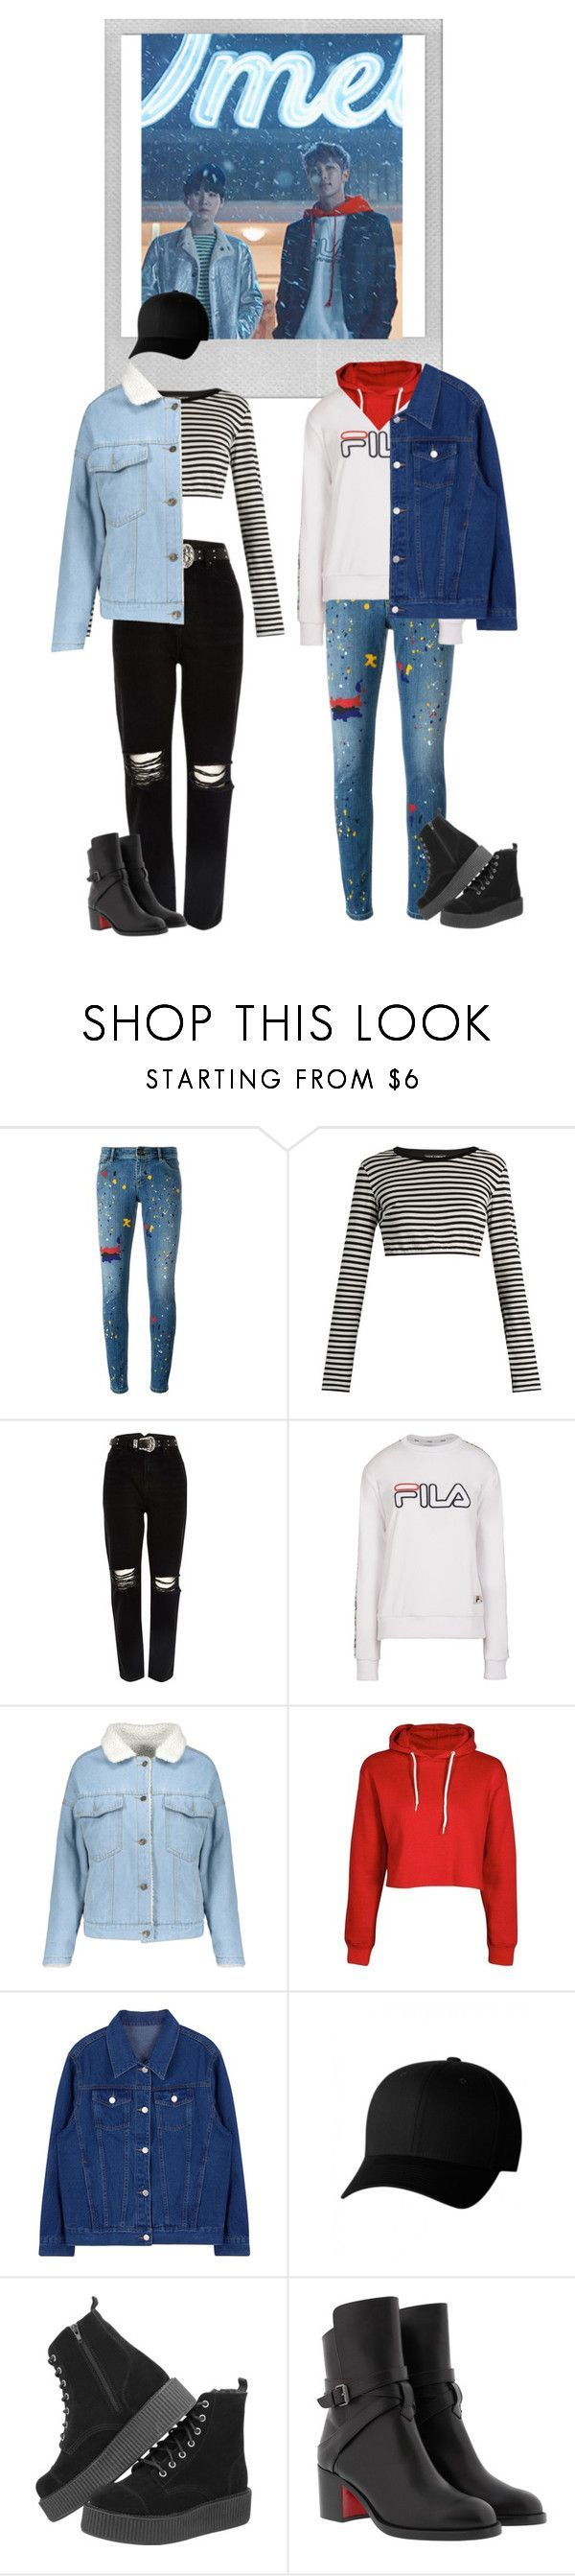 """Agust D + Joonie + Denim Jackets"" by xcaplooompx on Polyvore featuring Polaroid, Alice + Olivia, Dolce&Gabbana, River Island, Fila, Boohoo, Flexfit and Christian Louboutin"